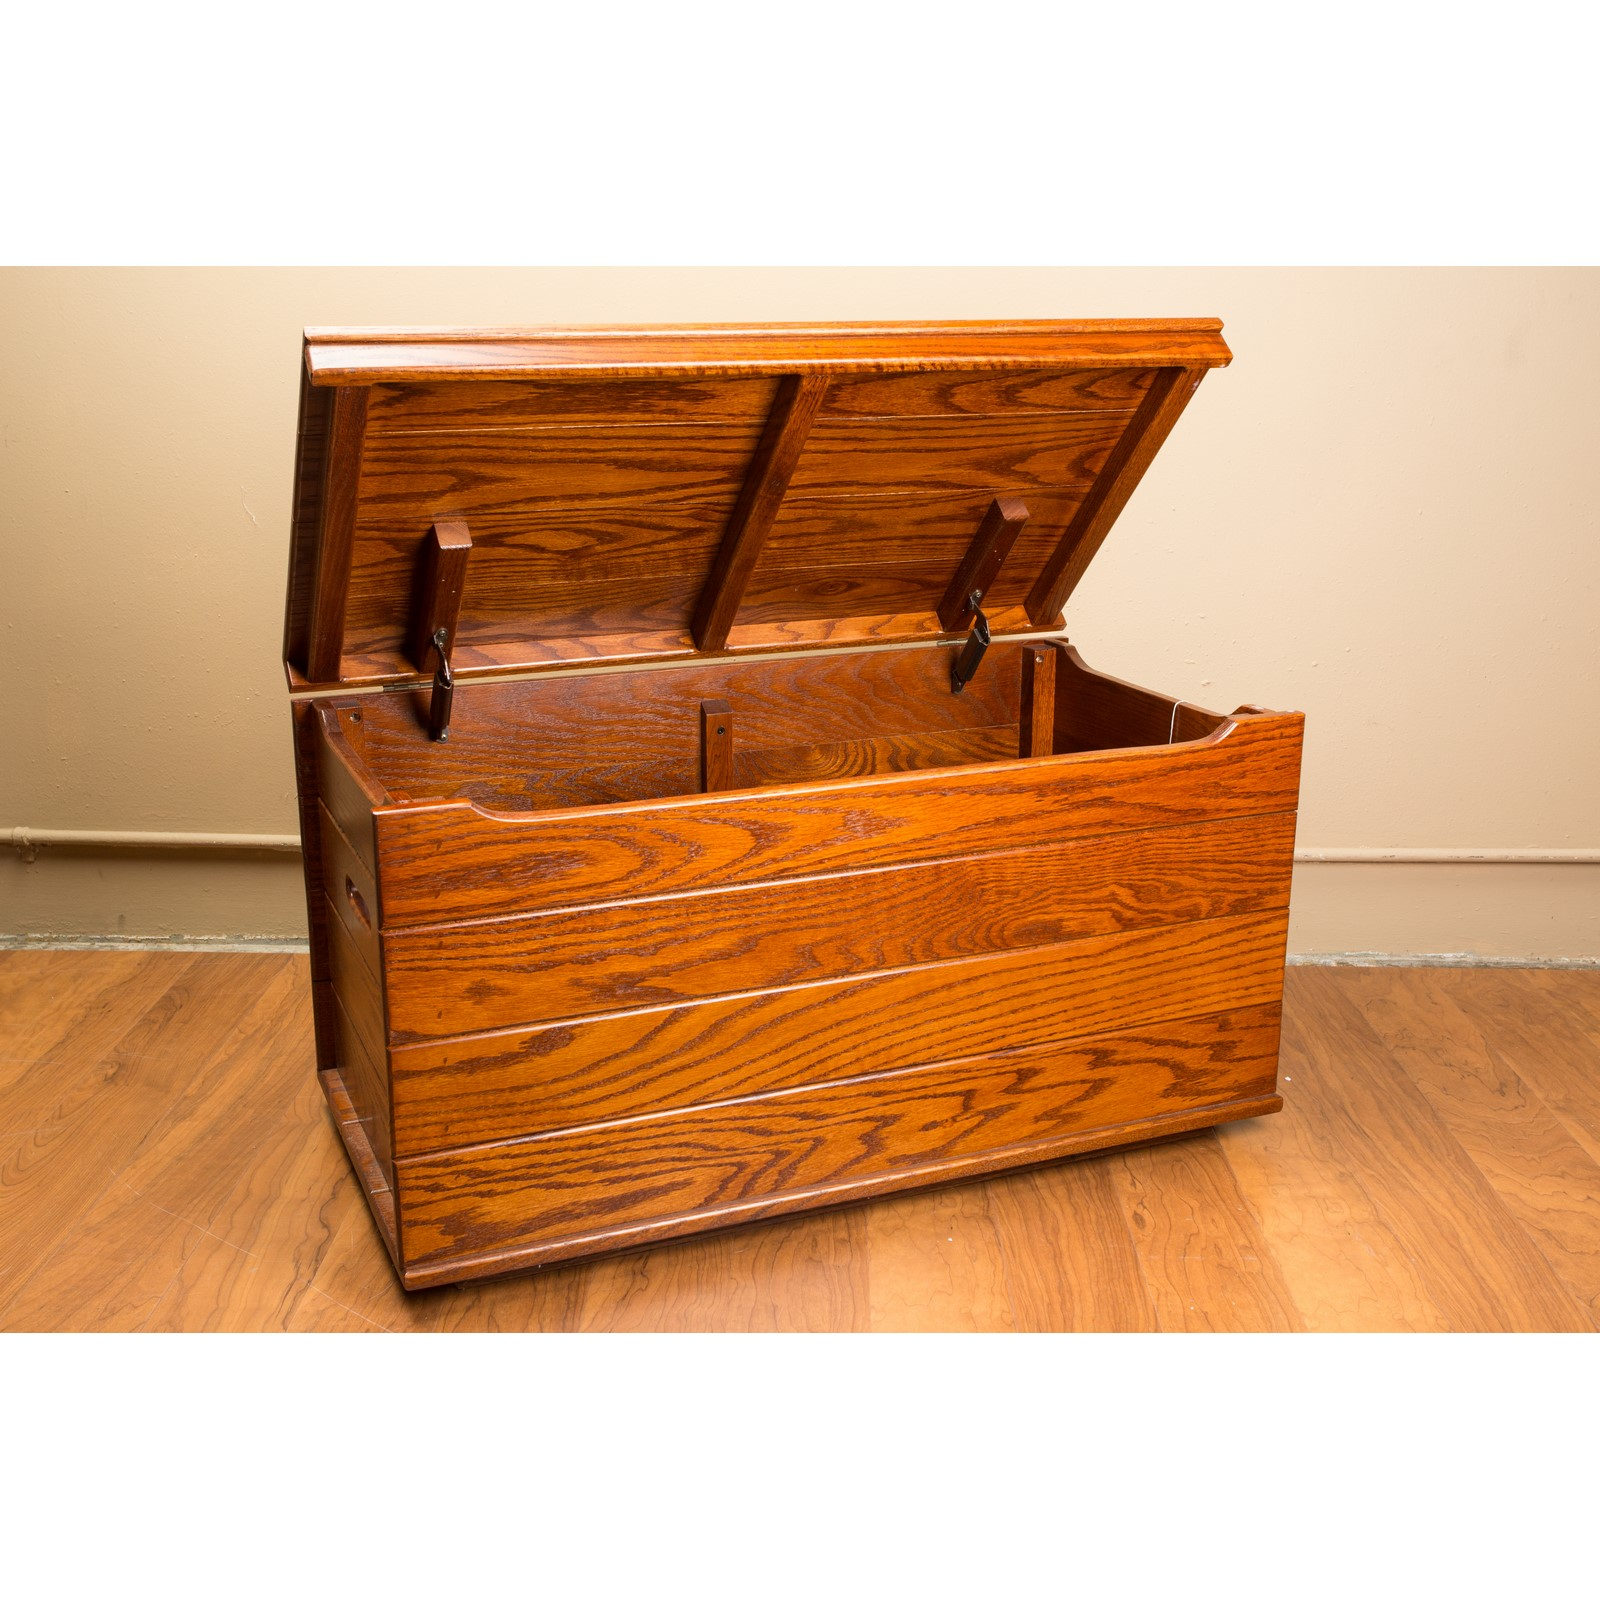 Creative Wood Design Organizer Chest Stewart Roth Furniture